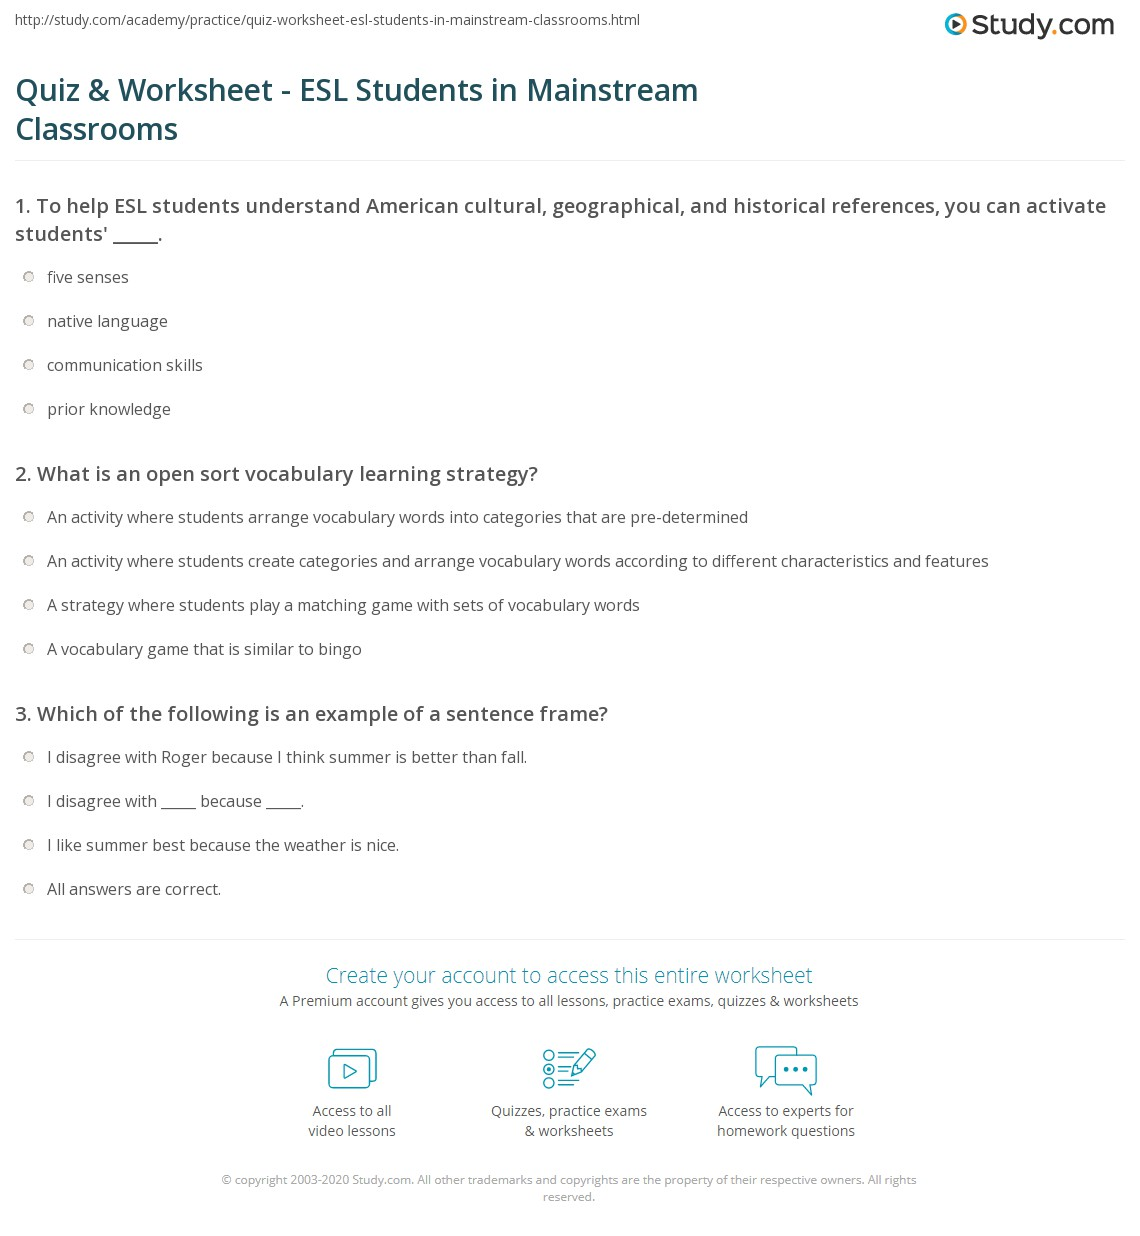 Quiz Worksheet Esl Students In Mainstream Classrooms Study